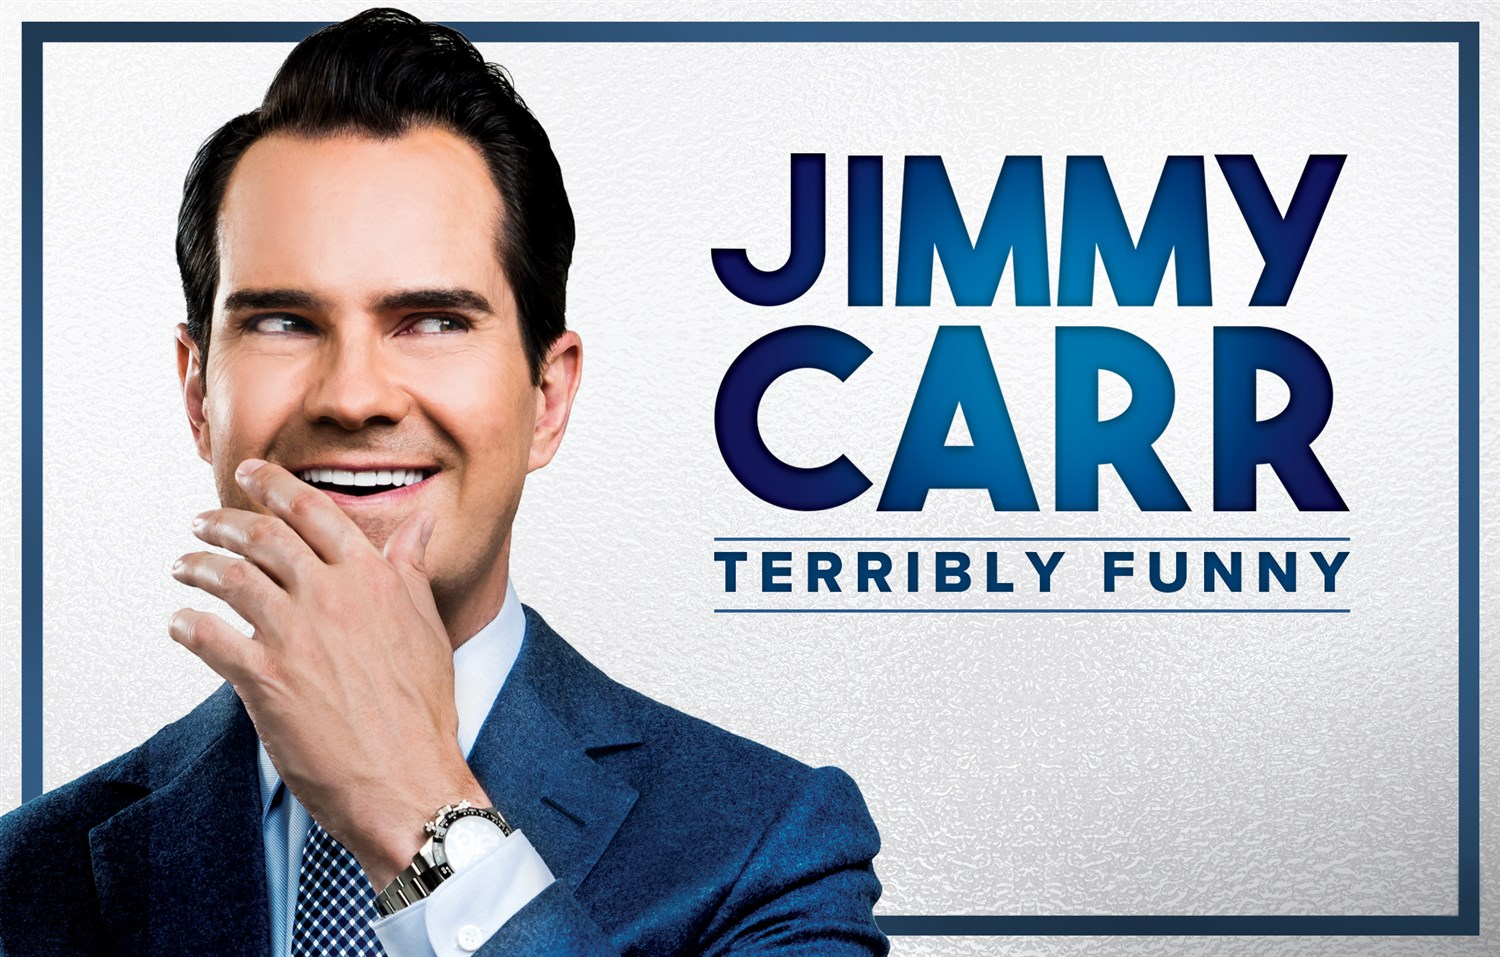 Jimmy Carr | 25 Oct 2020